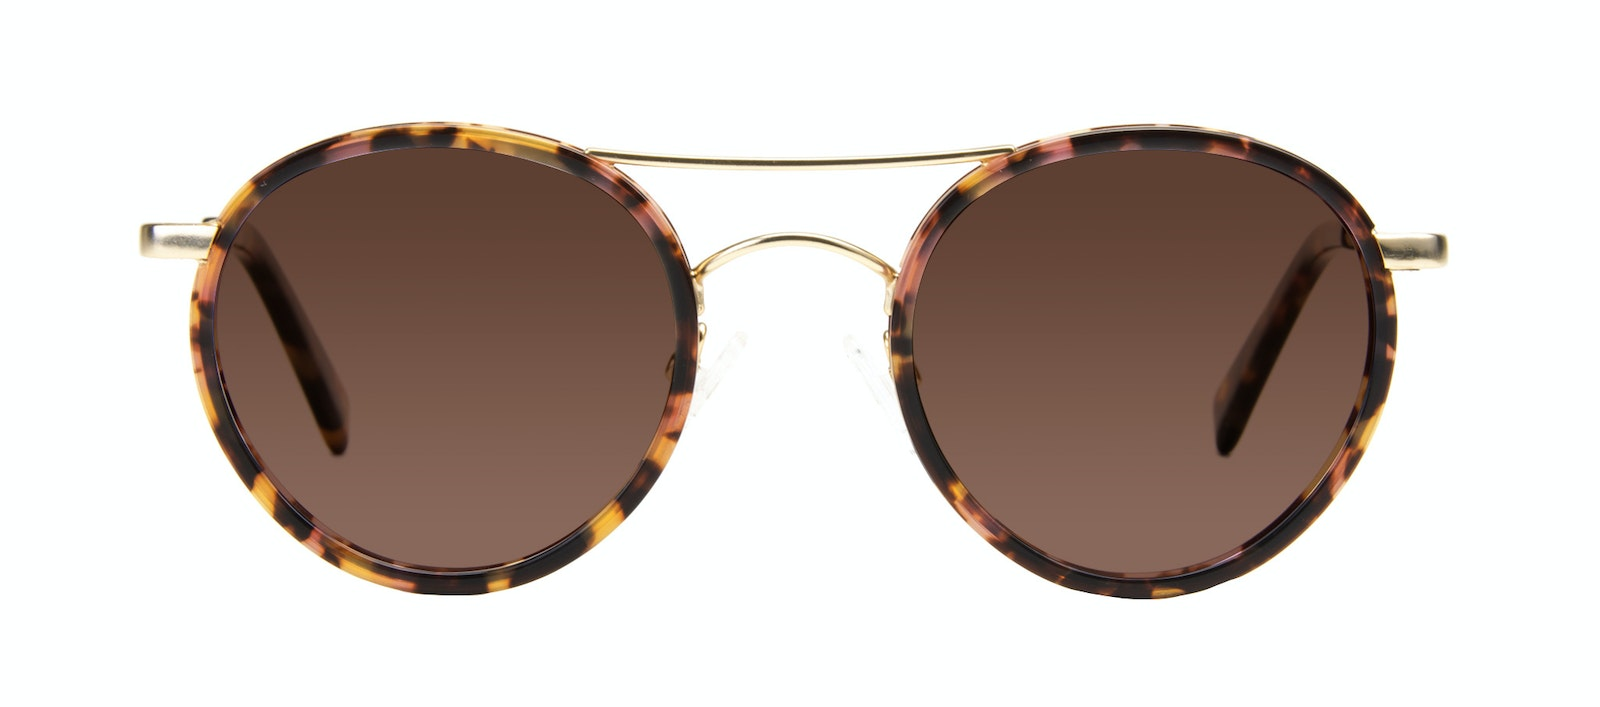 Affordable Fashion Glasses Aviator Round Sunglasses Women Chelsea Gold Tortoise Front